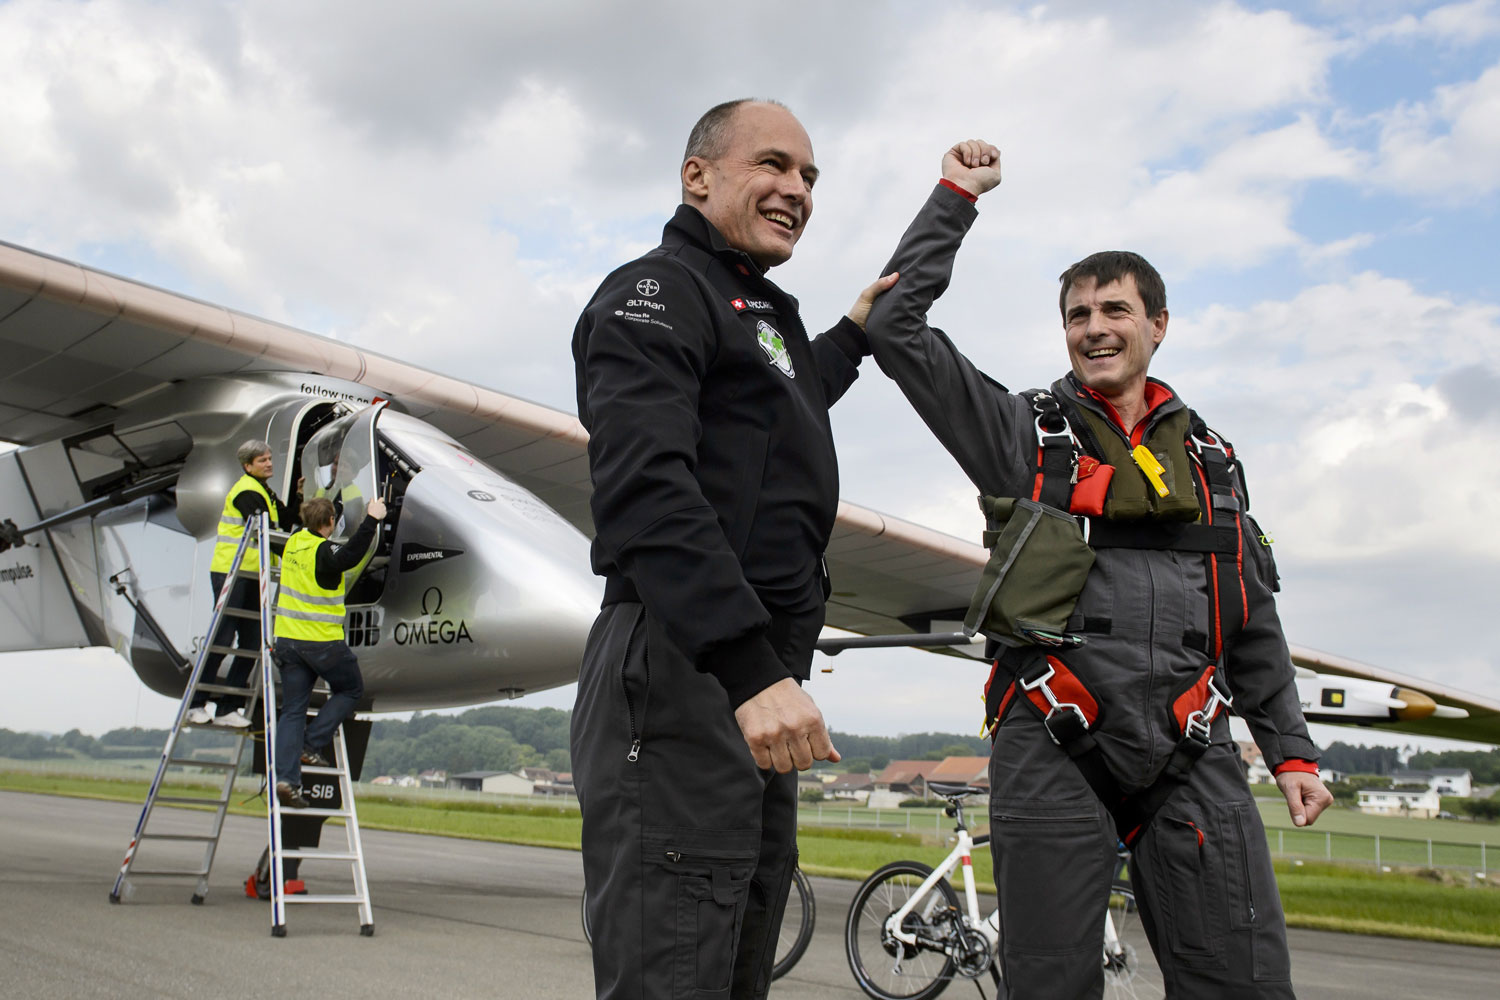 From left: Solar Impulse co-founder Bertrand Piccard congratulates German test pilot Markus Scherdel after Solar Impulse 2's maiden flight from Payerne on  June 2, 2014.